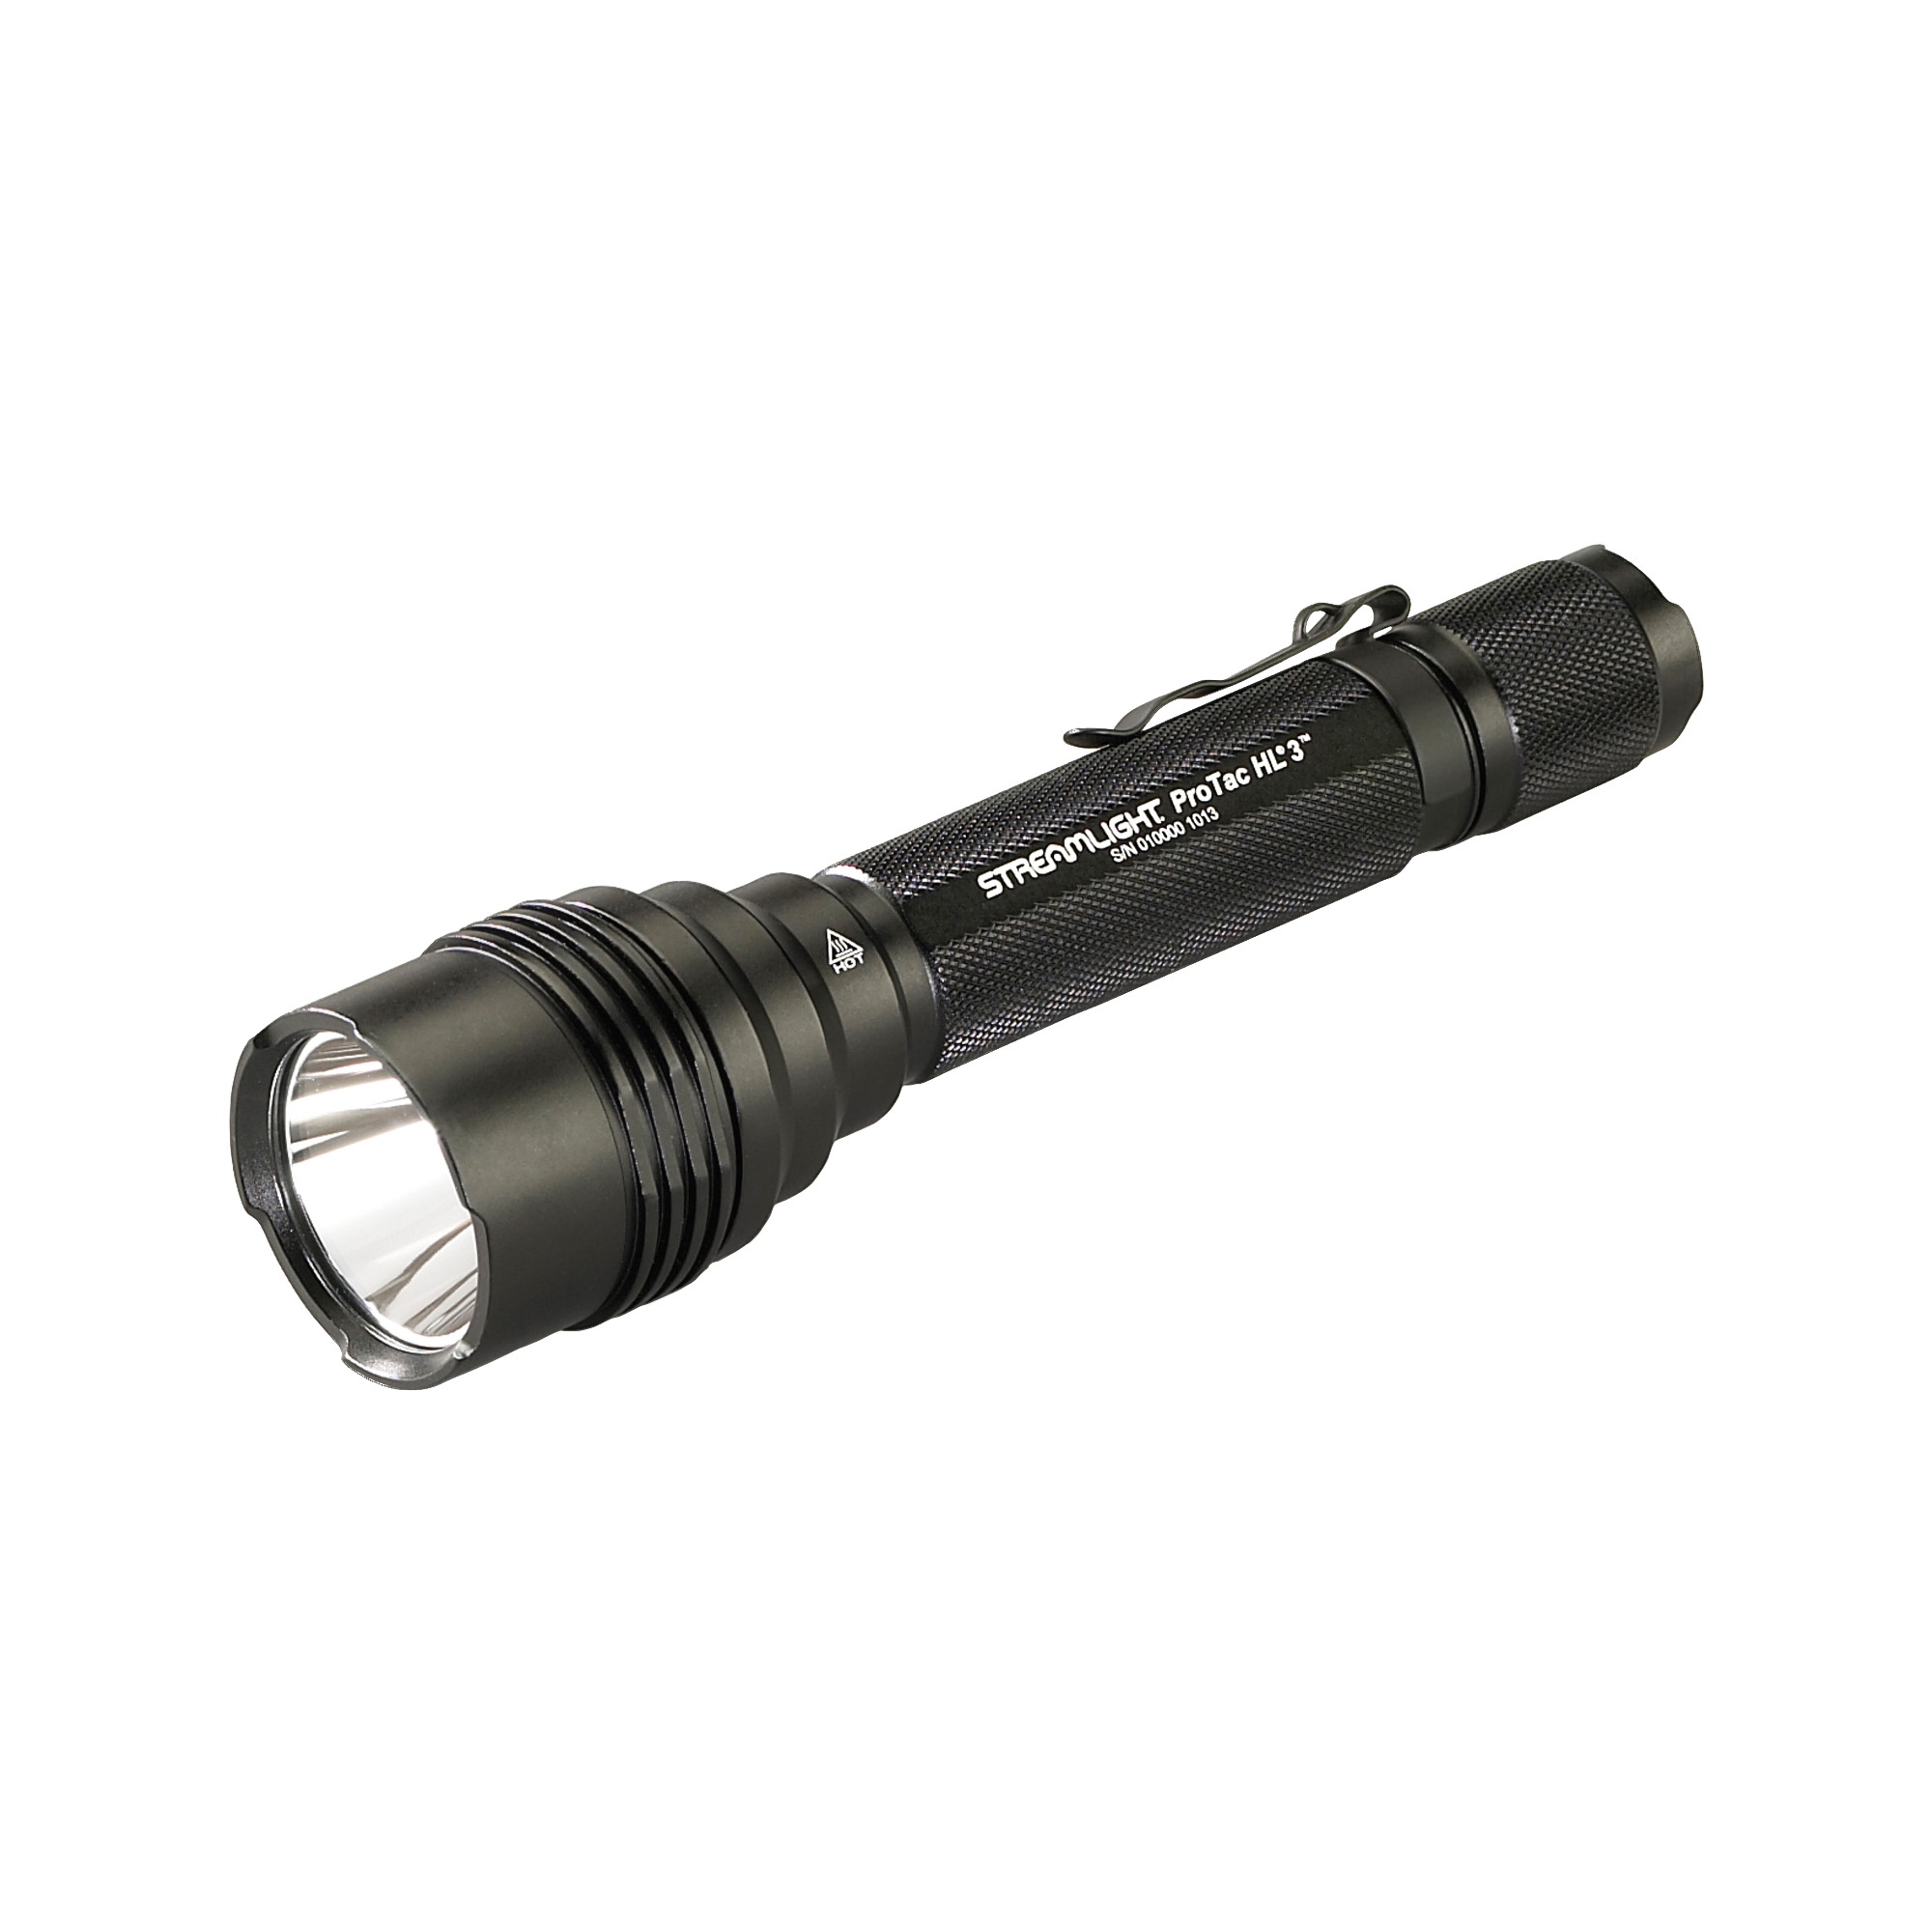 "With 1""100 lumens of blinding light"" the ProTac HL(R)3 is the newest and brightest addition to the ProTac(R) series. The ProTac HL(R)3 offers the latest in power LED technology and three different user selectable programs. The combination of size and output from the C4(R) LED result in one of the brightest tactical lights for its' size. Packaged with a removable pocket clip"" holster and sure grip rubber sleeve."